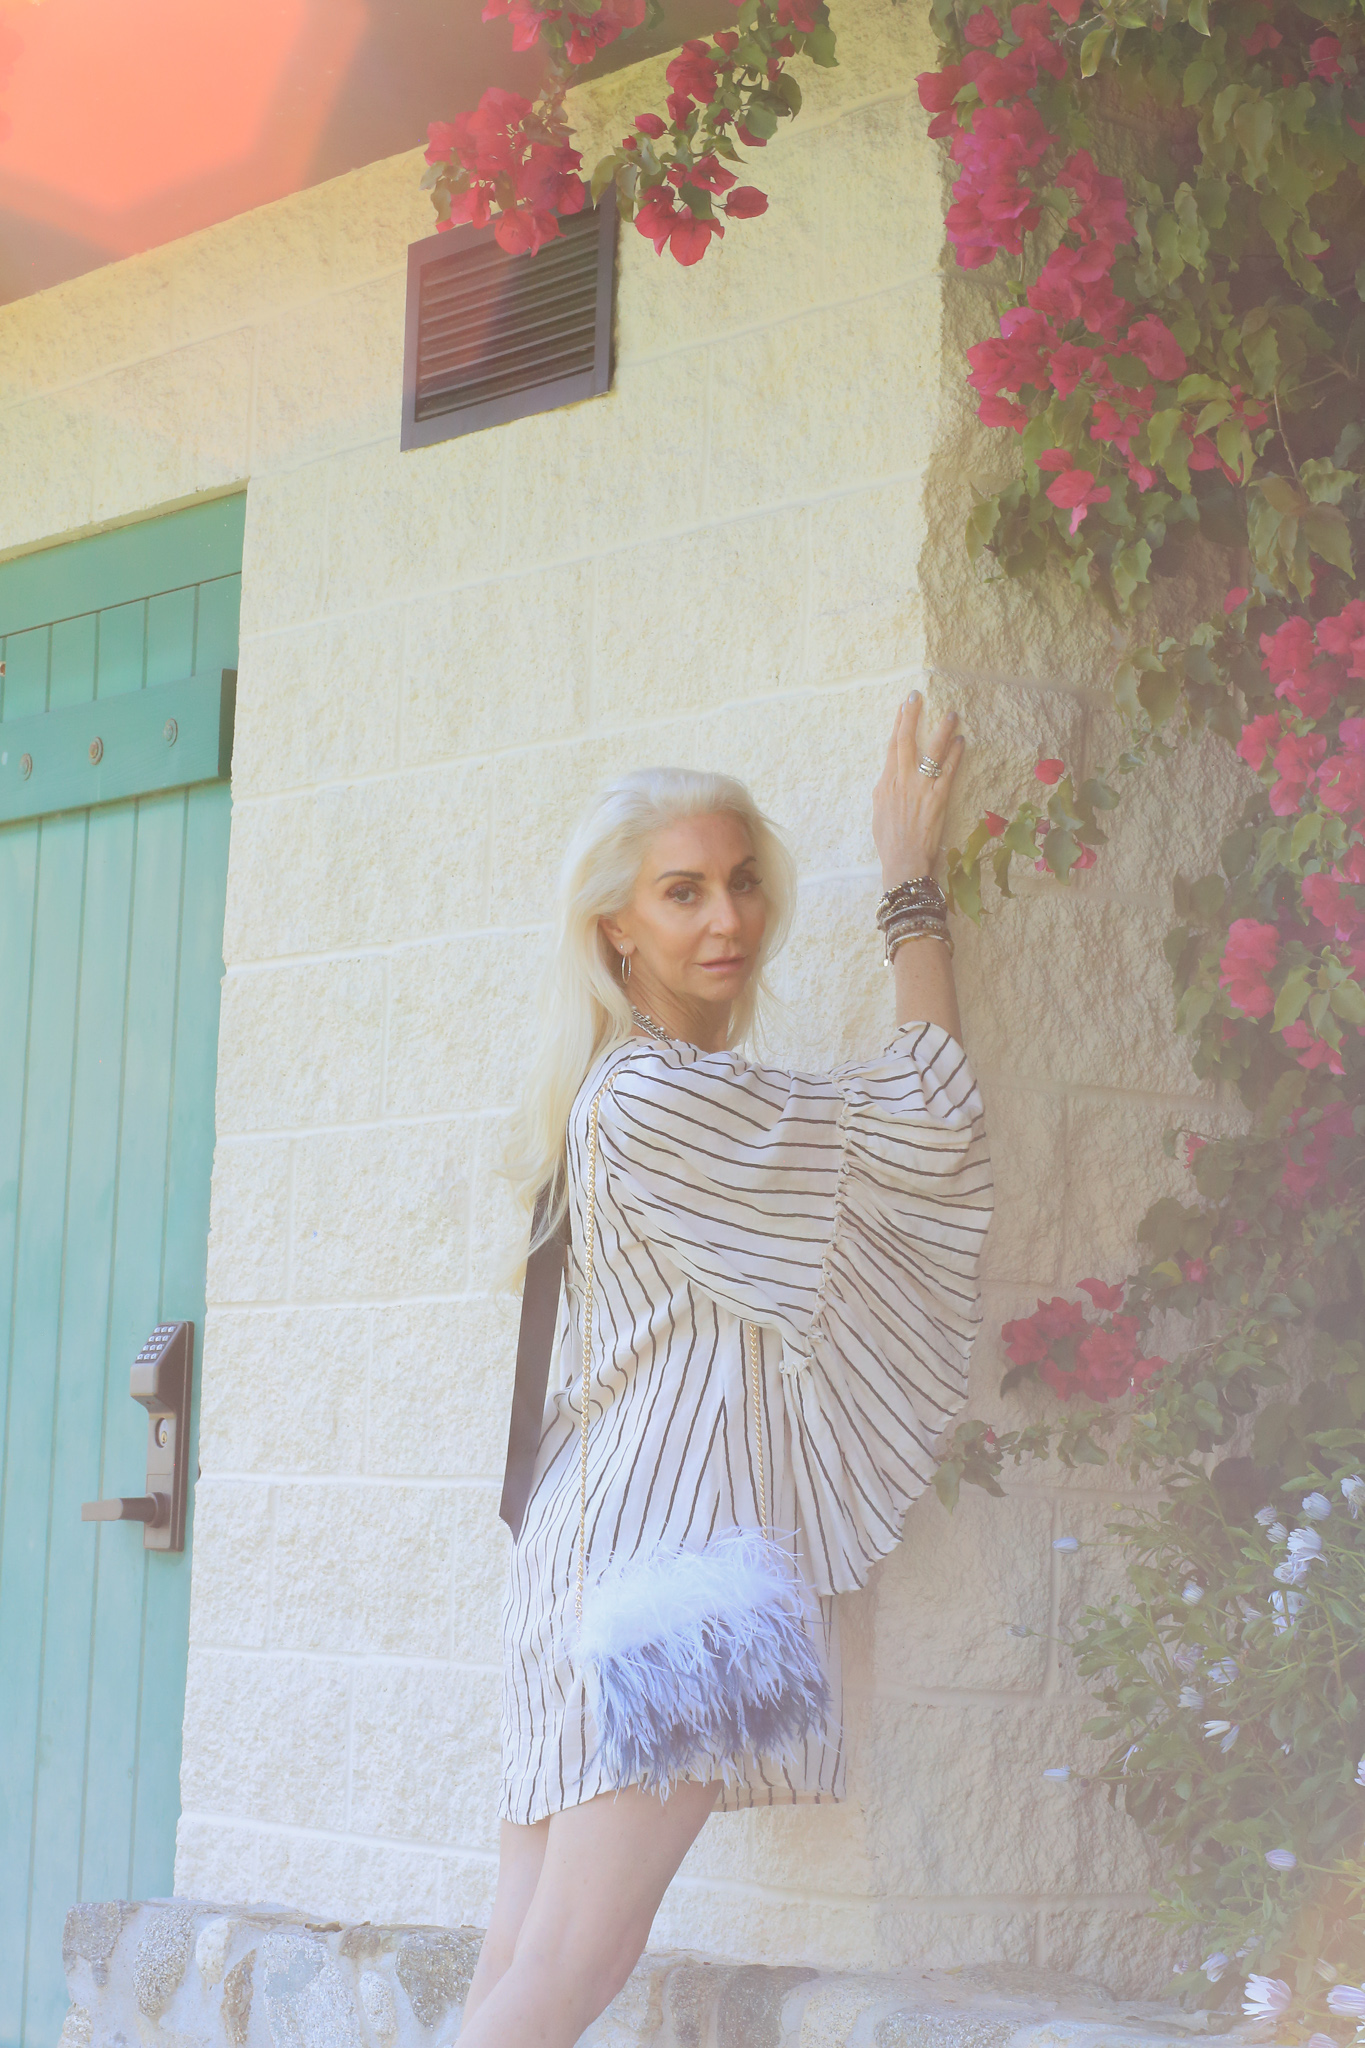 silver hair model, spanish architechture, laguna beach photoshoot, anthropologie aesthetic